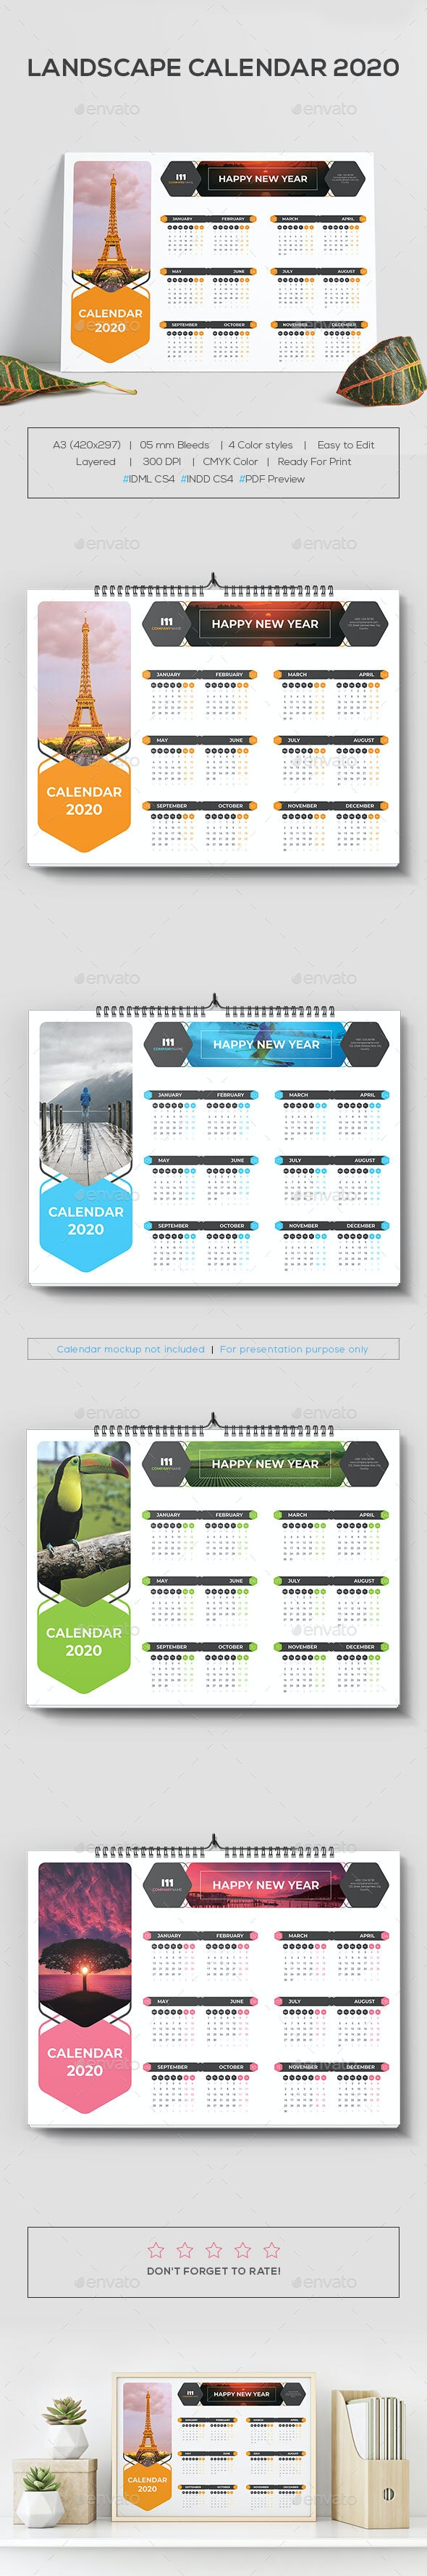 Landscape Calendar 2020 - Calendars Stationery